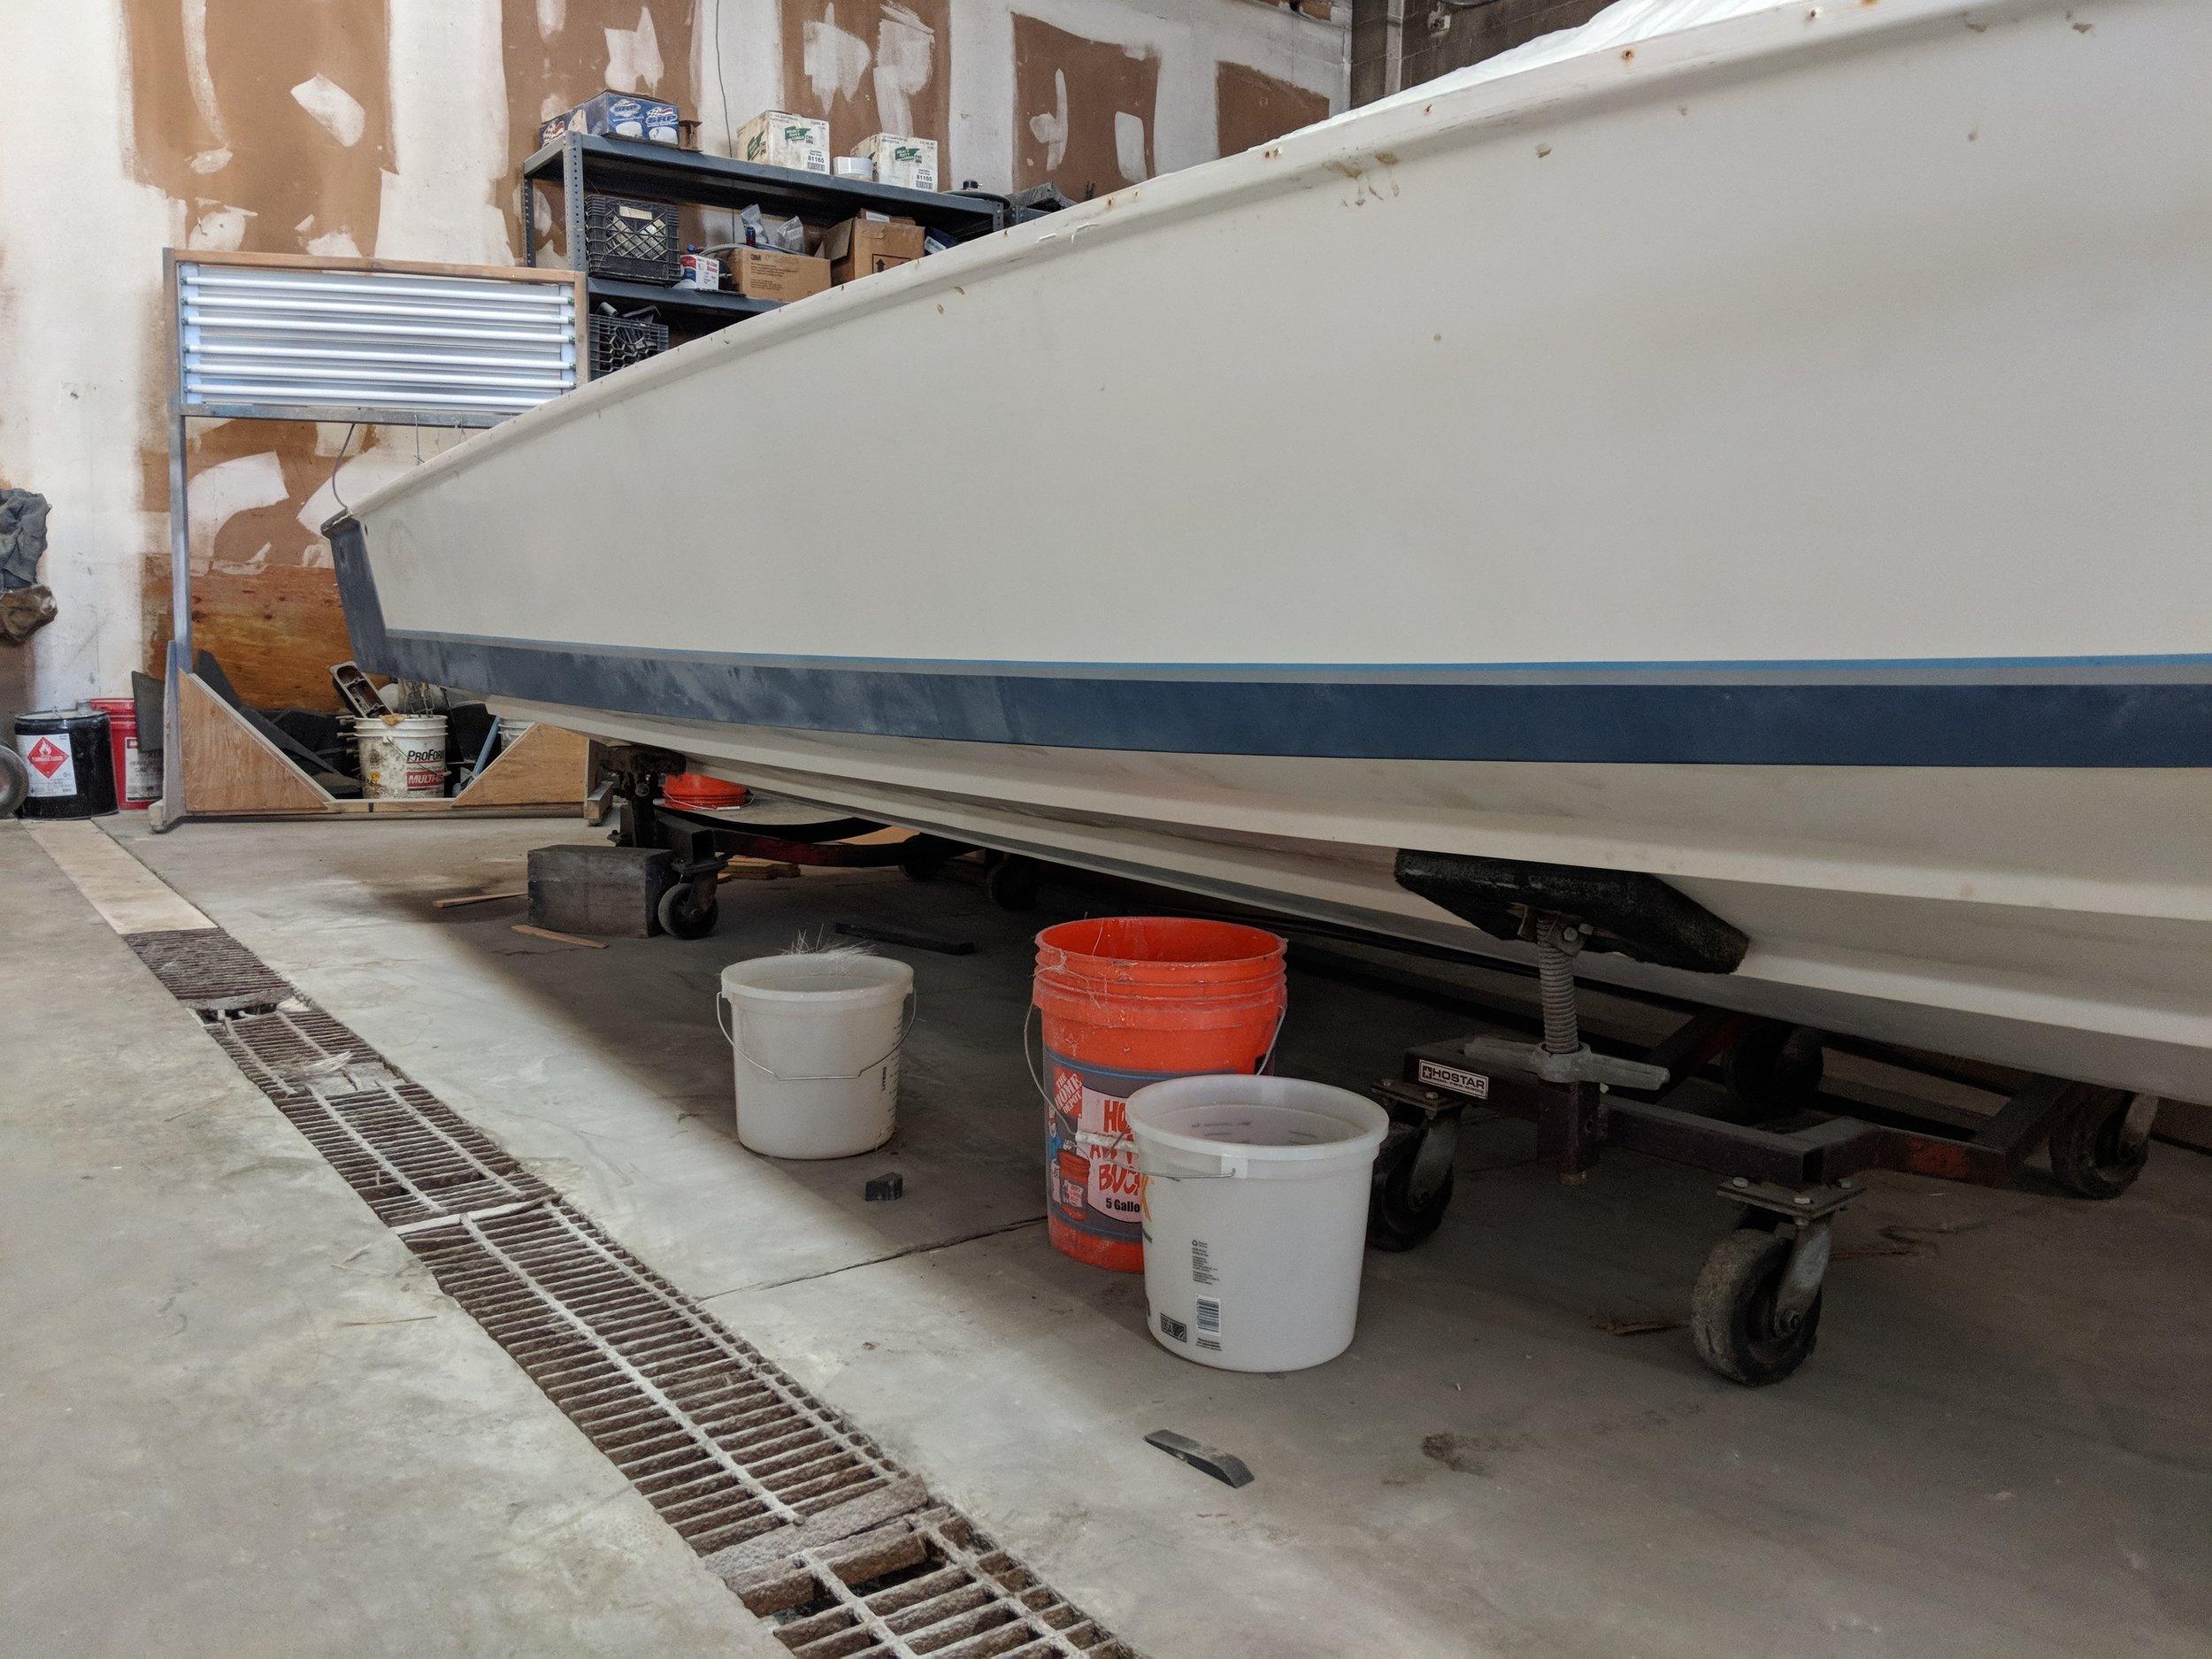 Plenty of work left. Blueprinting the hull is a critical part of the project.